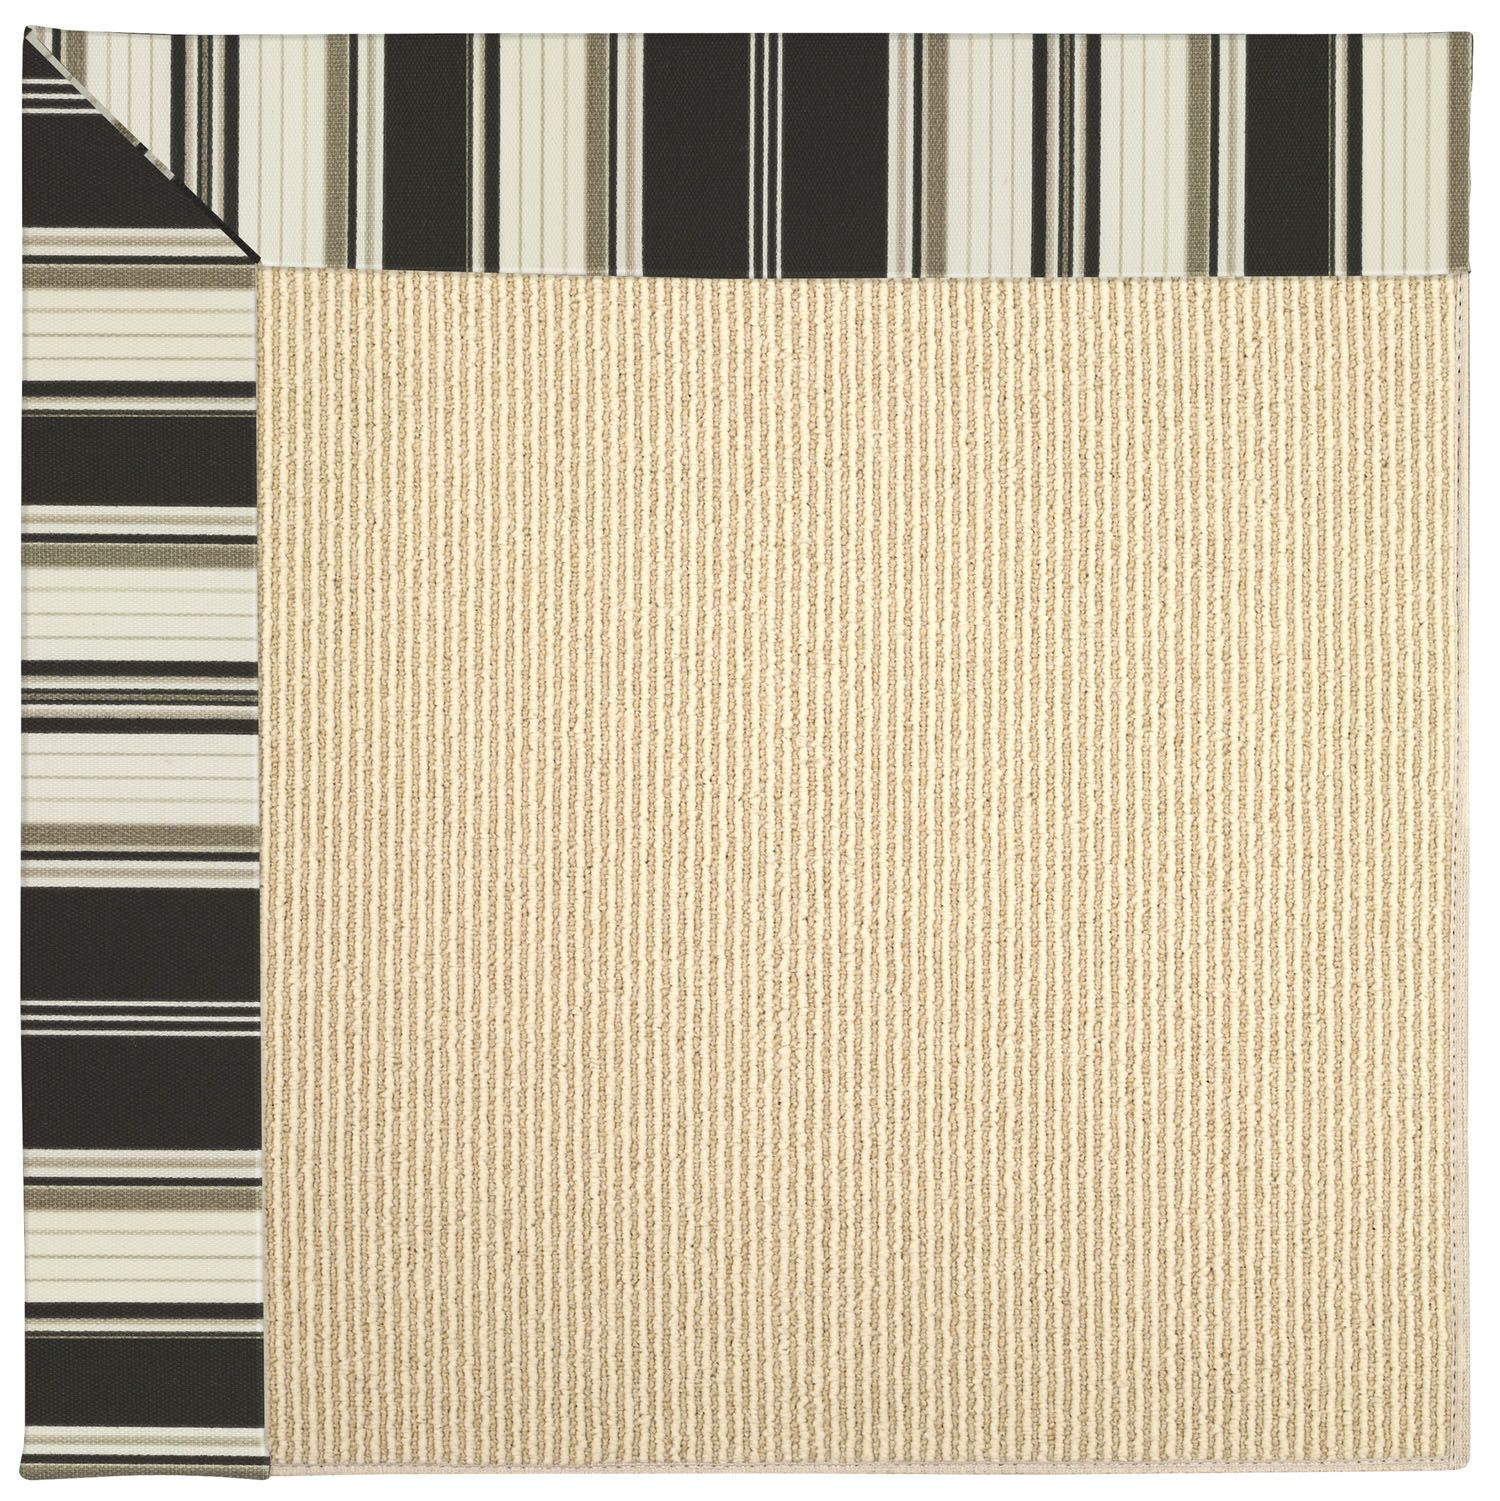 Lisle Machine Tufted Onyx Indoor/Outdoor Area Rug Rug Size: Rectangle 7' x 9'